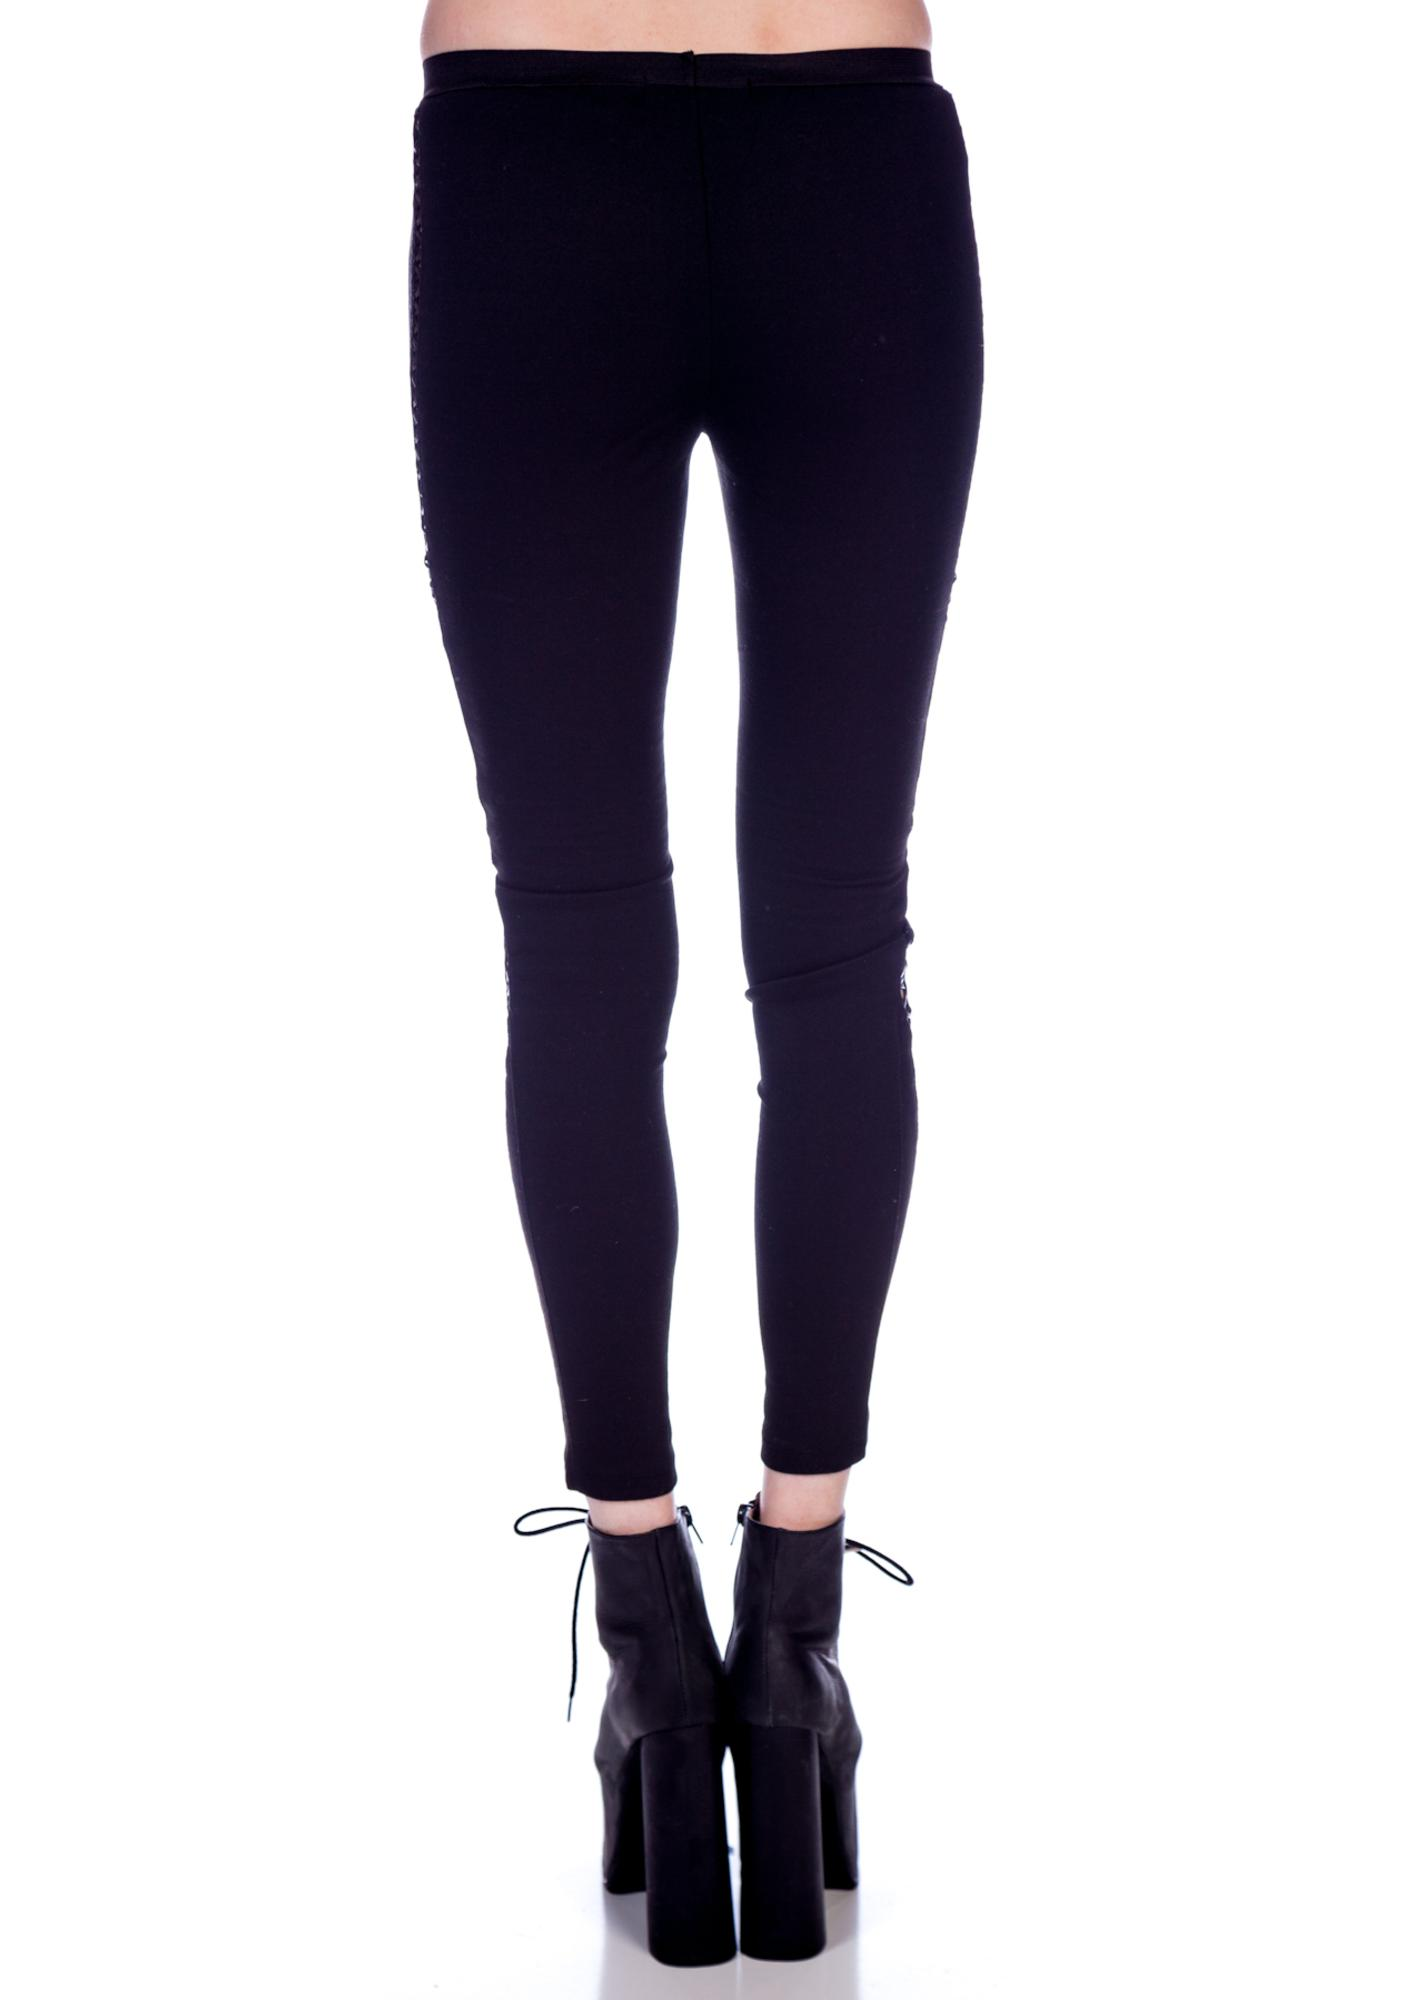 HLZBLZ x Belle of the Brawl In the Dark Leggings